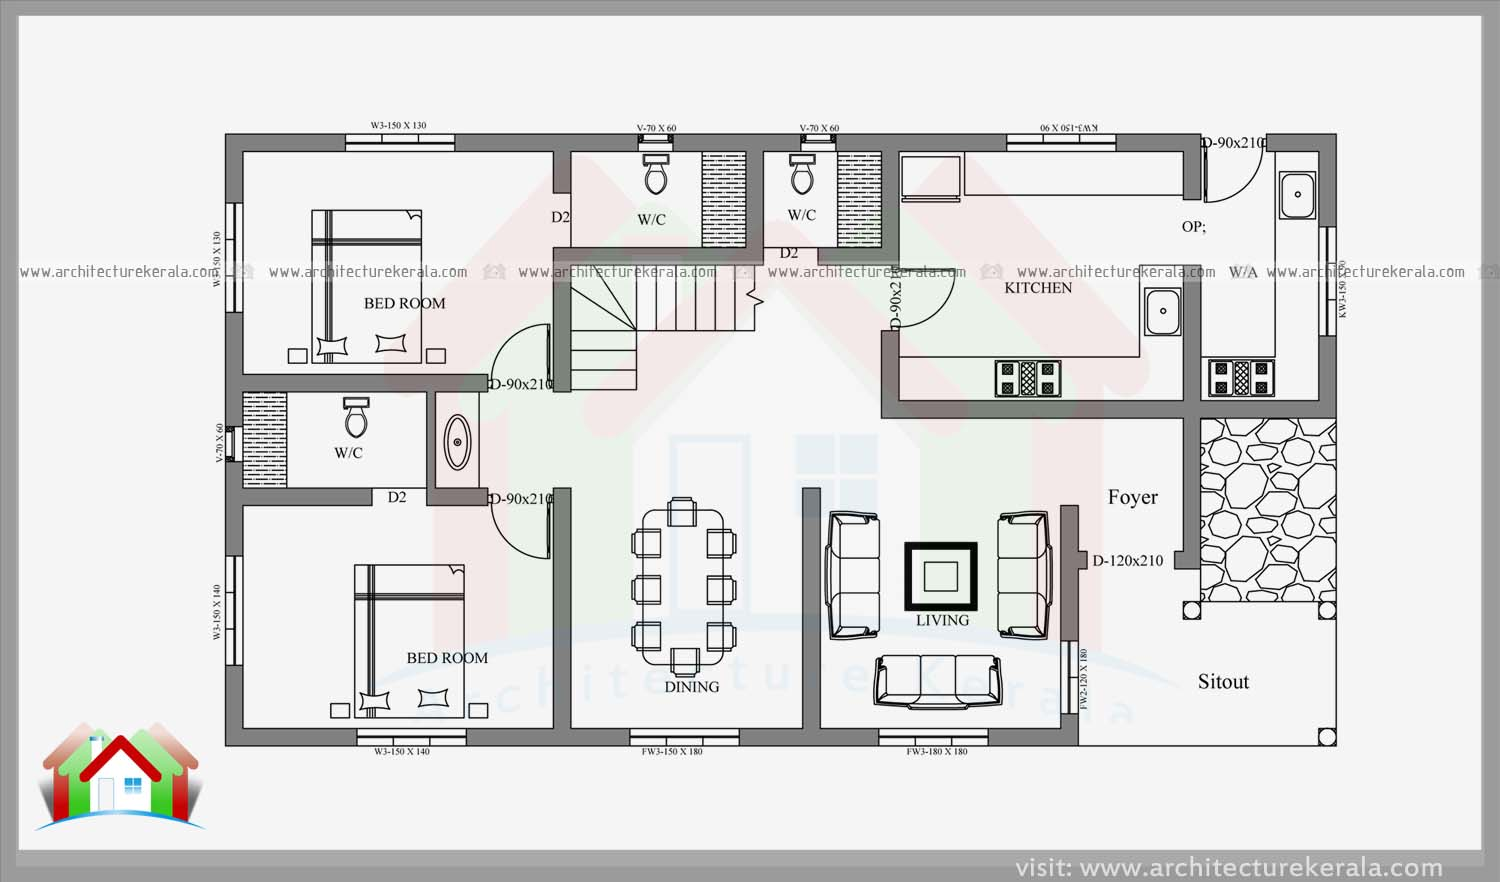 Autocad House Plans in addition House Extension 2 likewise 654099 One story 3 bedroom  2 bath traditional style house plan moreover 243 Courtyard Home besides Double Storied Four Bedroom House Plan. on designs houses plans and elevations